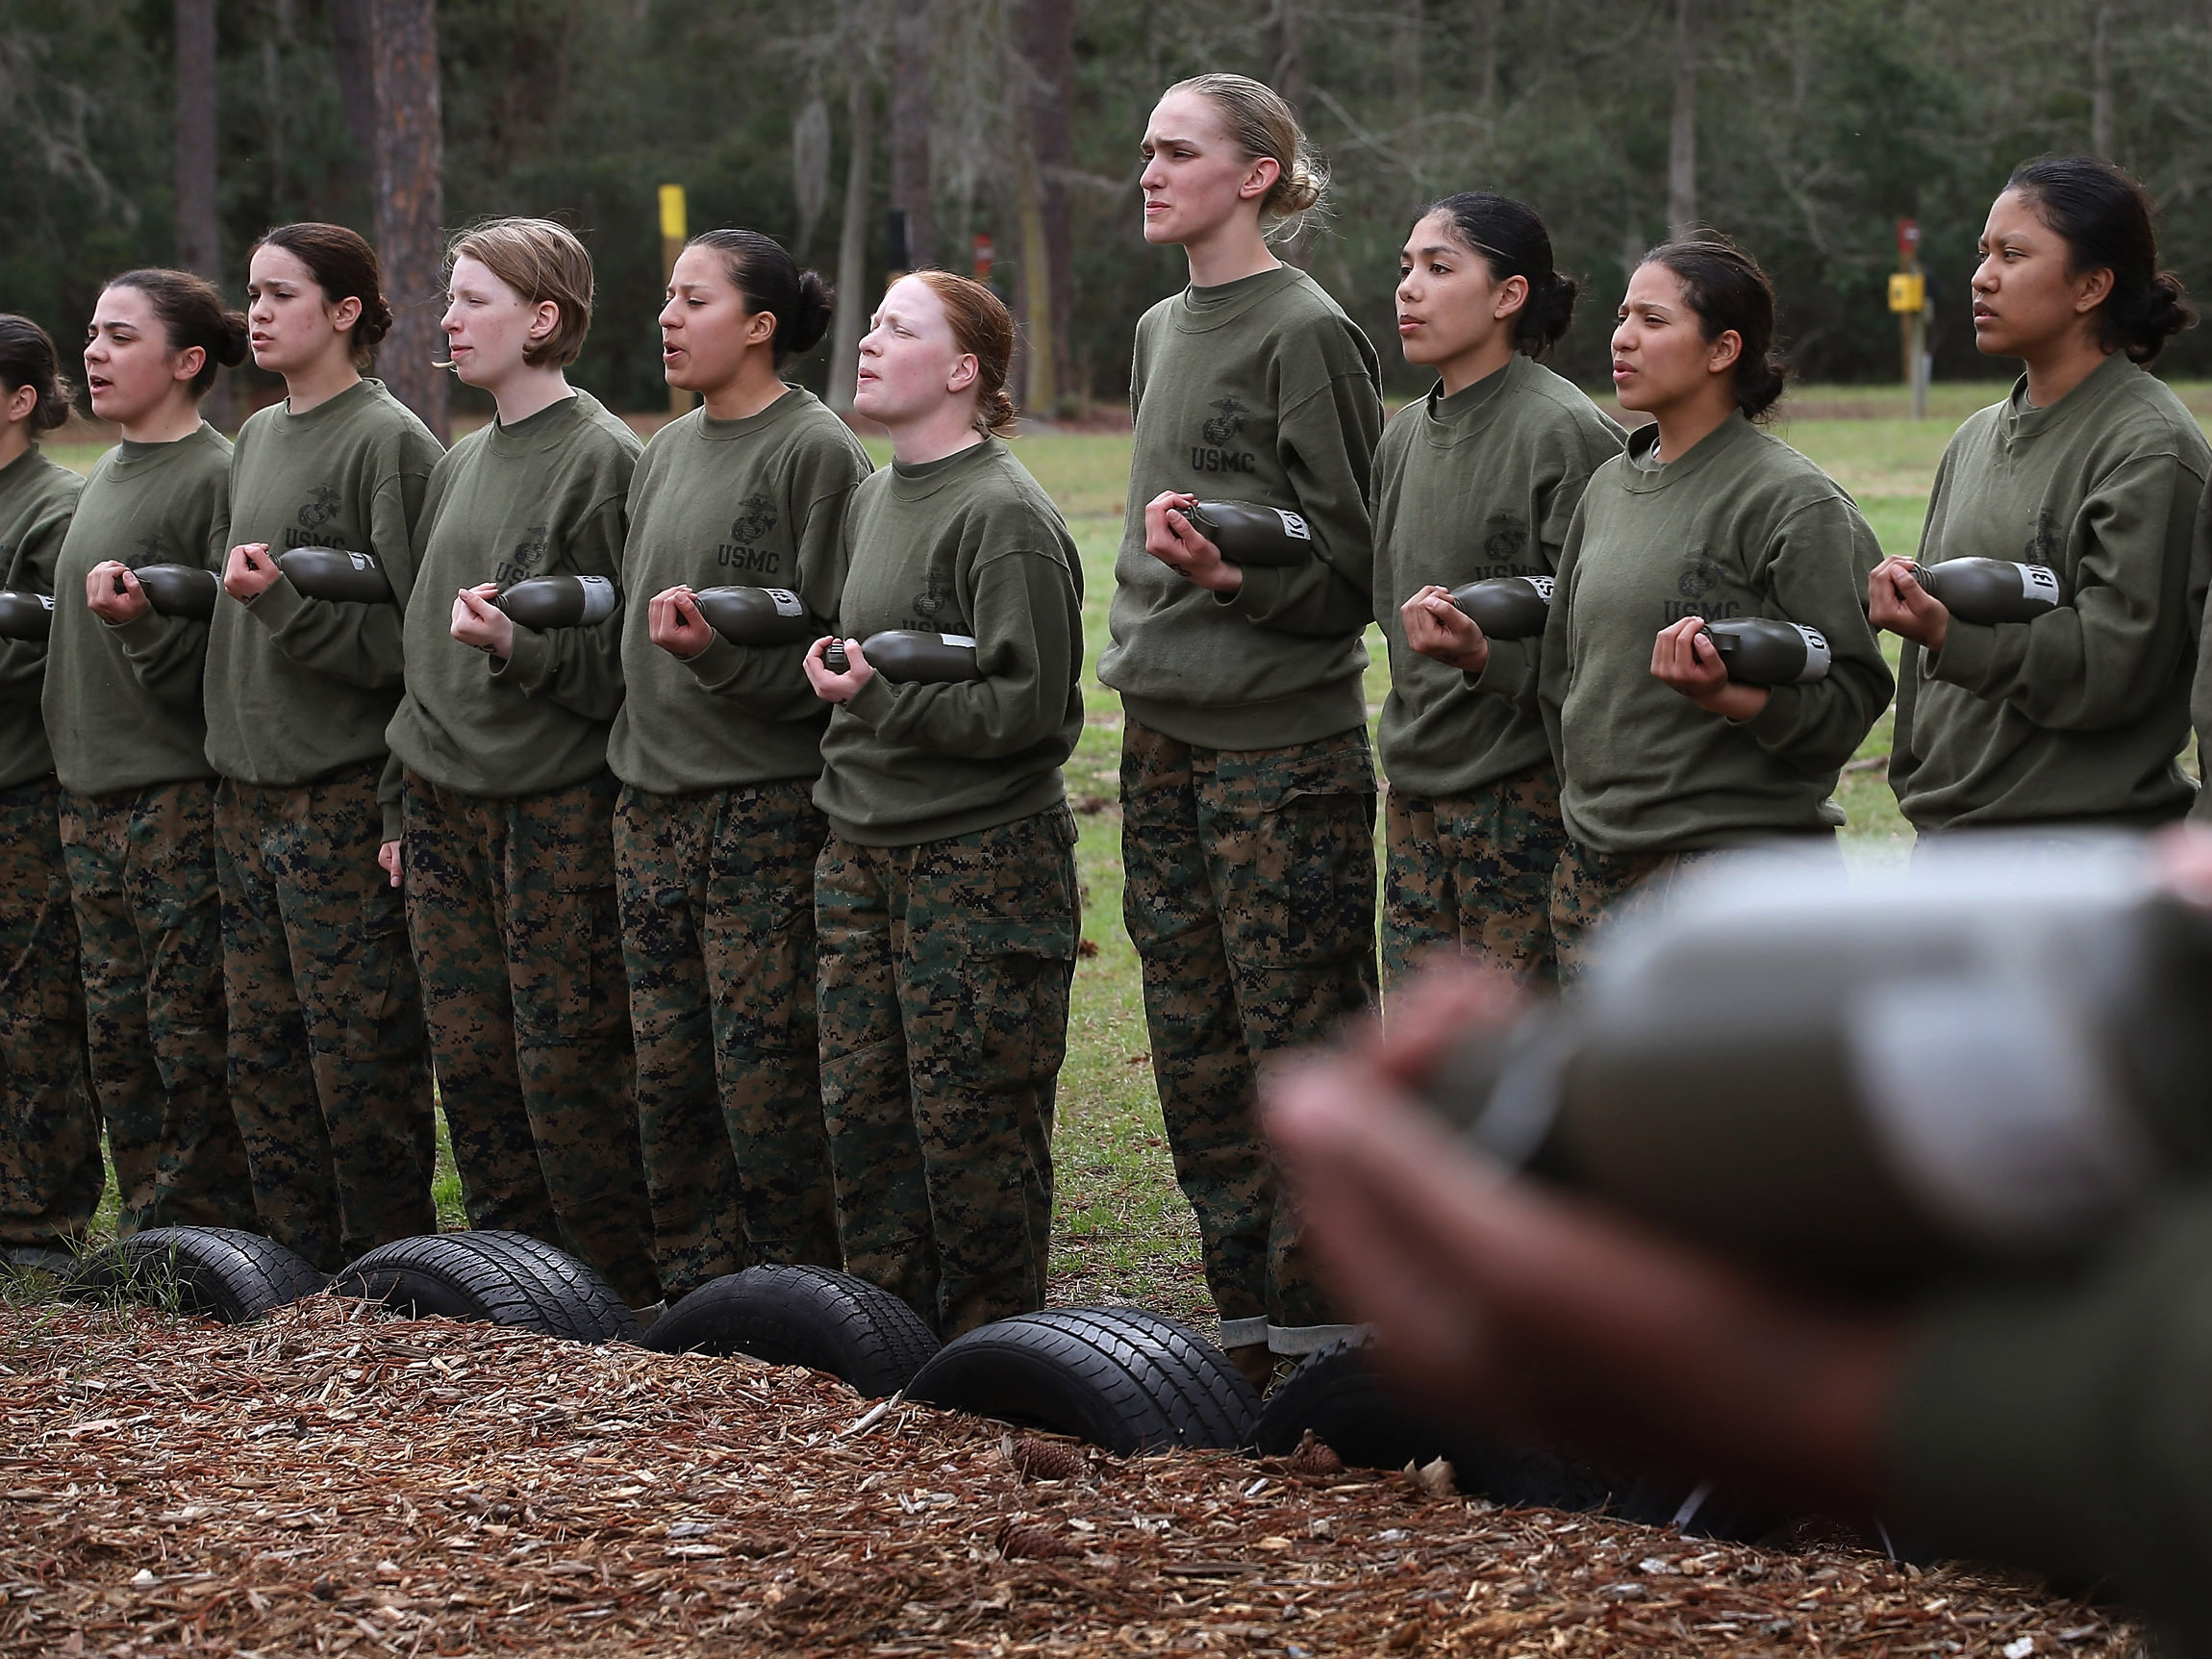 As Qualified Men Dwindle, Military Looks For A Few Good